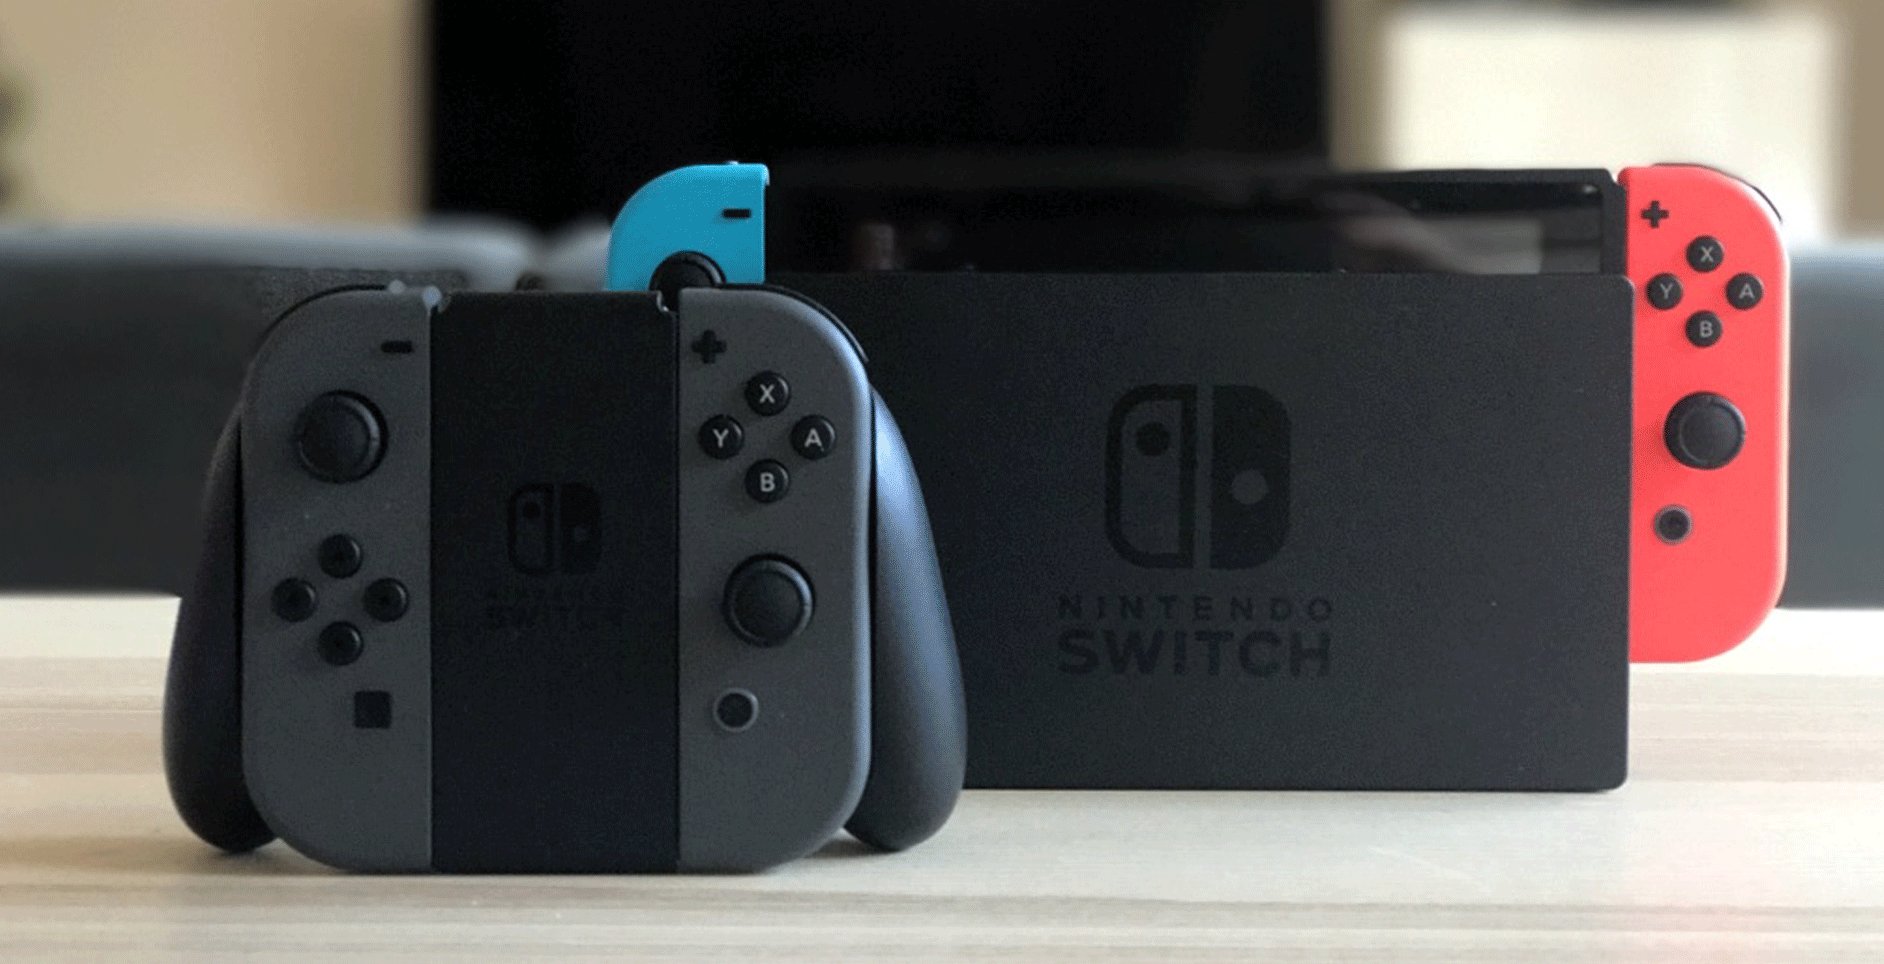 Nintendo Switch updates to version 7.0.0